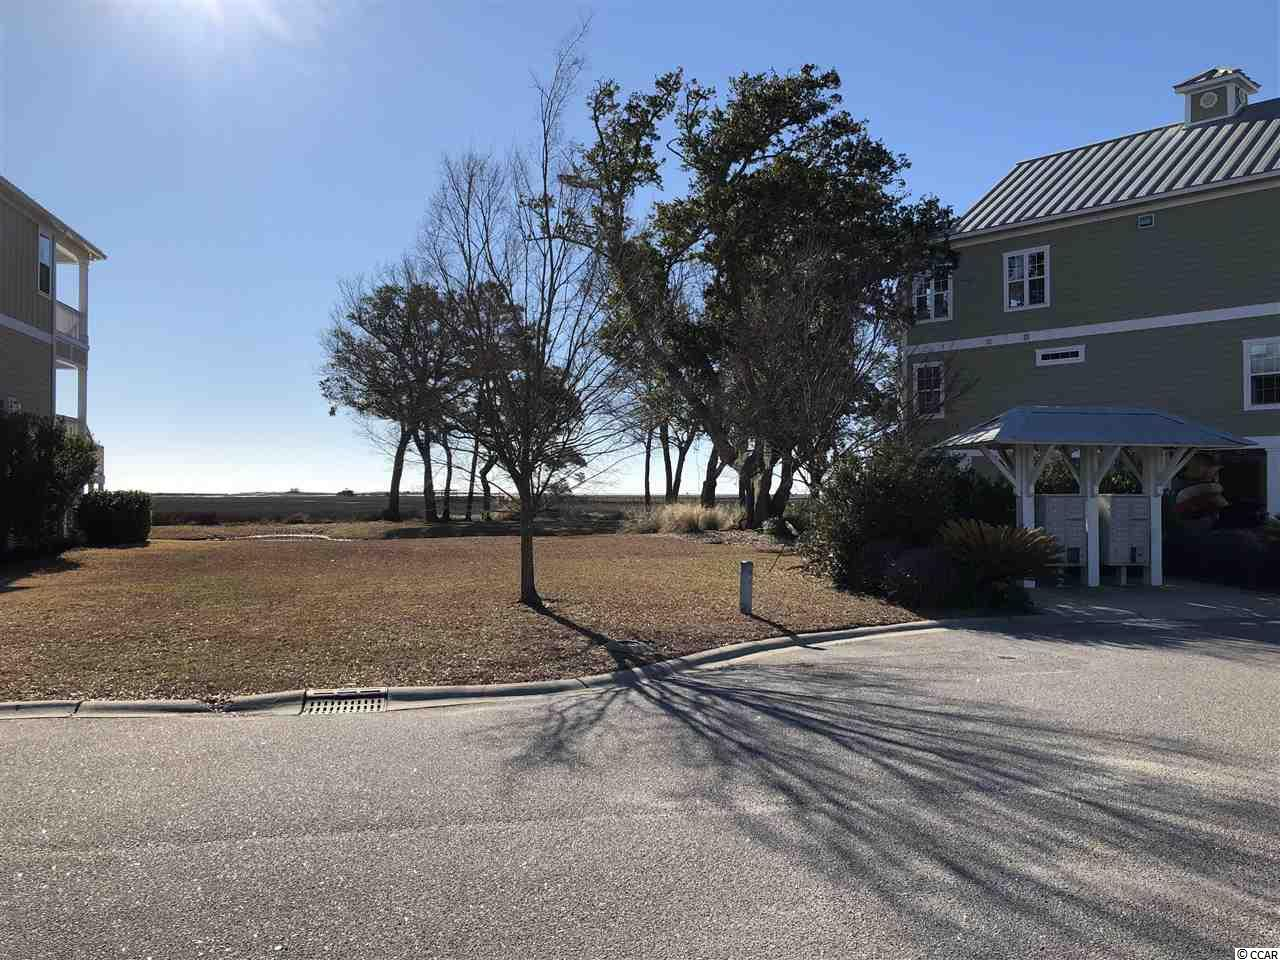 Bring your dream home plans and build on this beautiful marsh front lot in the prestigious Enclave Community in Pawley's Island. Nice flat lot with gorgeous views ready for your dream home build. Very few marsh front lots left in the area. Enjoy the best the low country has to offer with views galore, private dock, club house and pool located in a quaint gated community in the heart of Pawley's Island. Near shopping, beaches, wonderful restaurants and all the other amenities Pawley's Island has to offer. This lot won't last long!